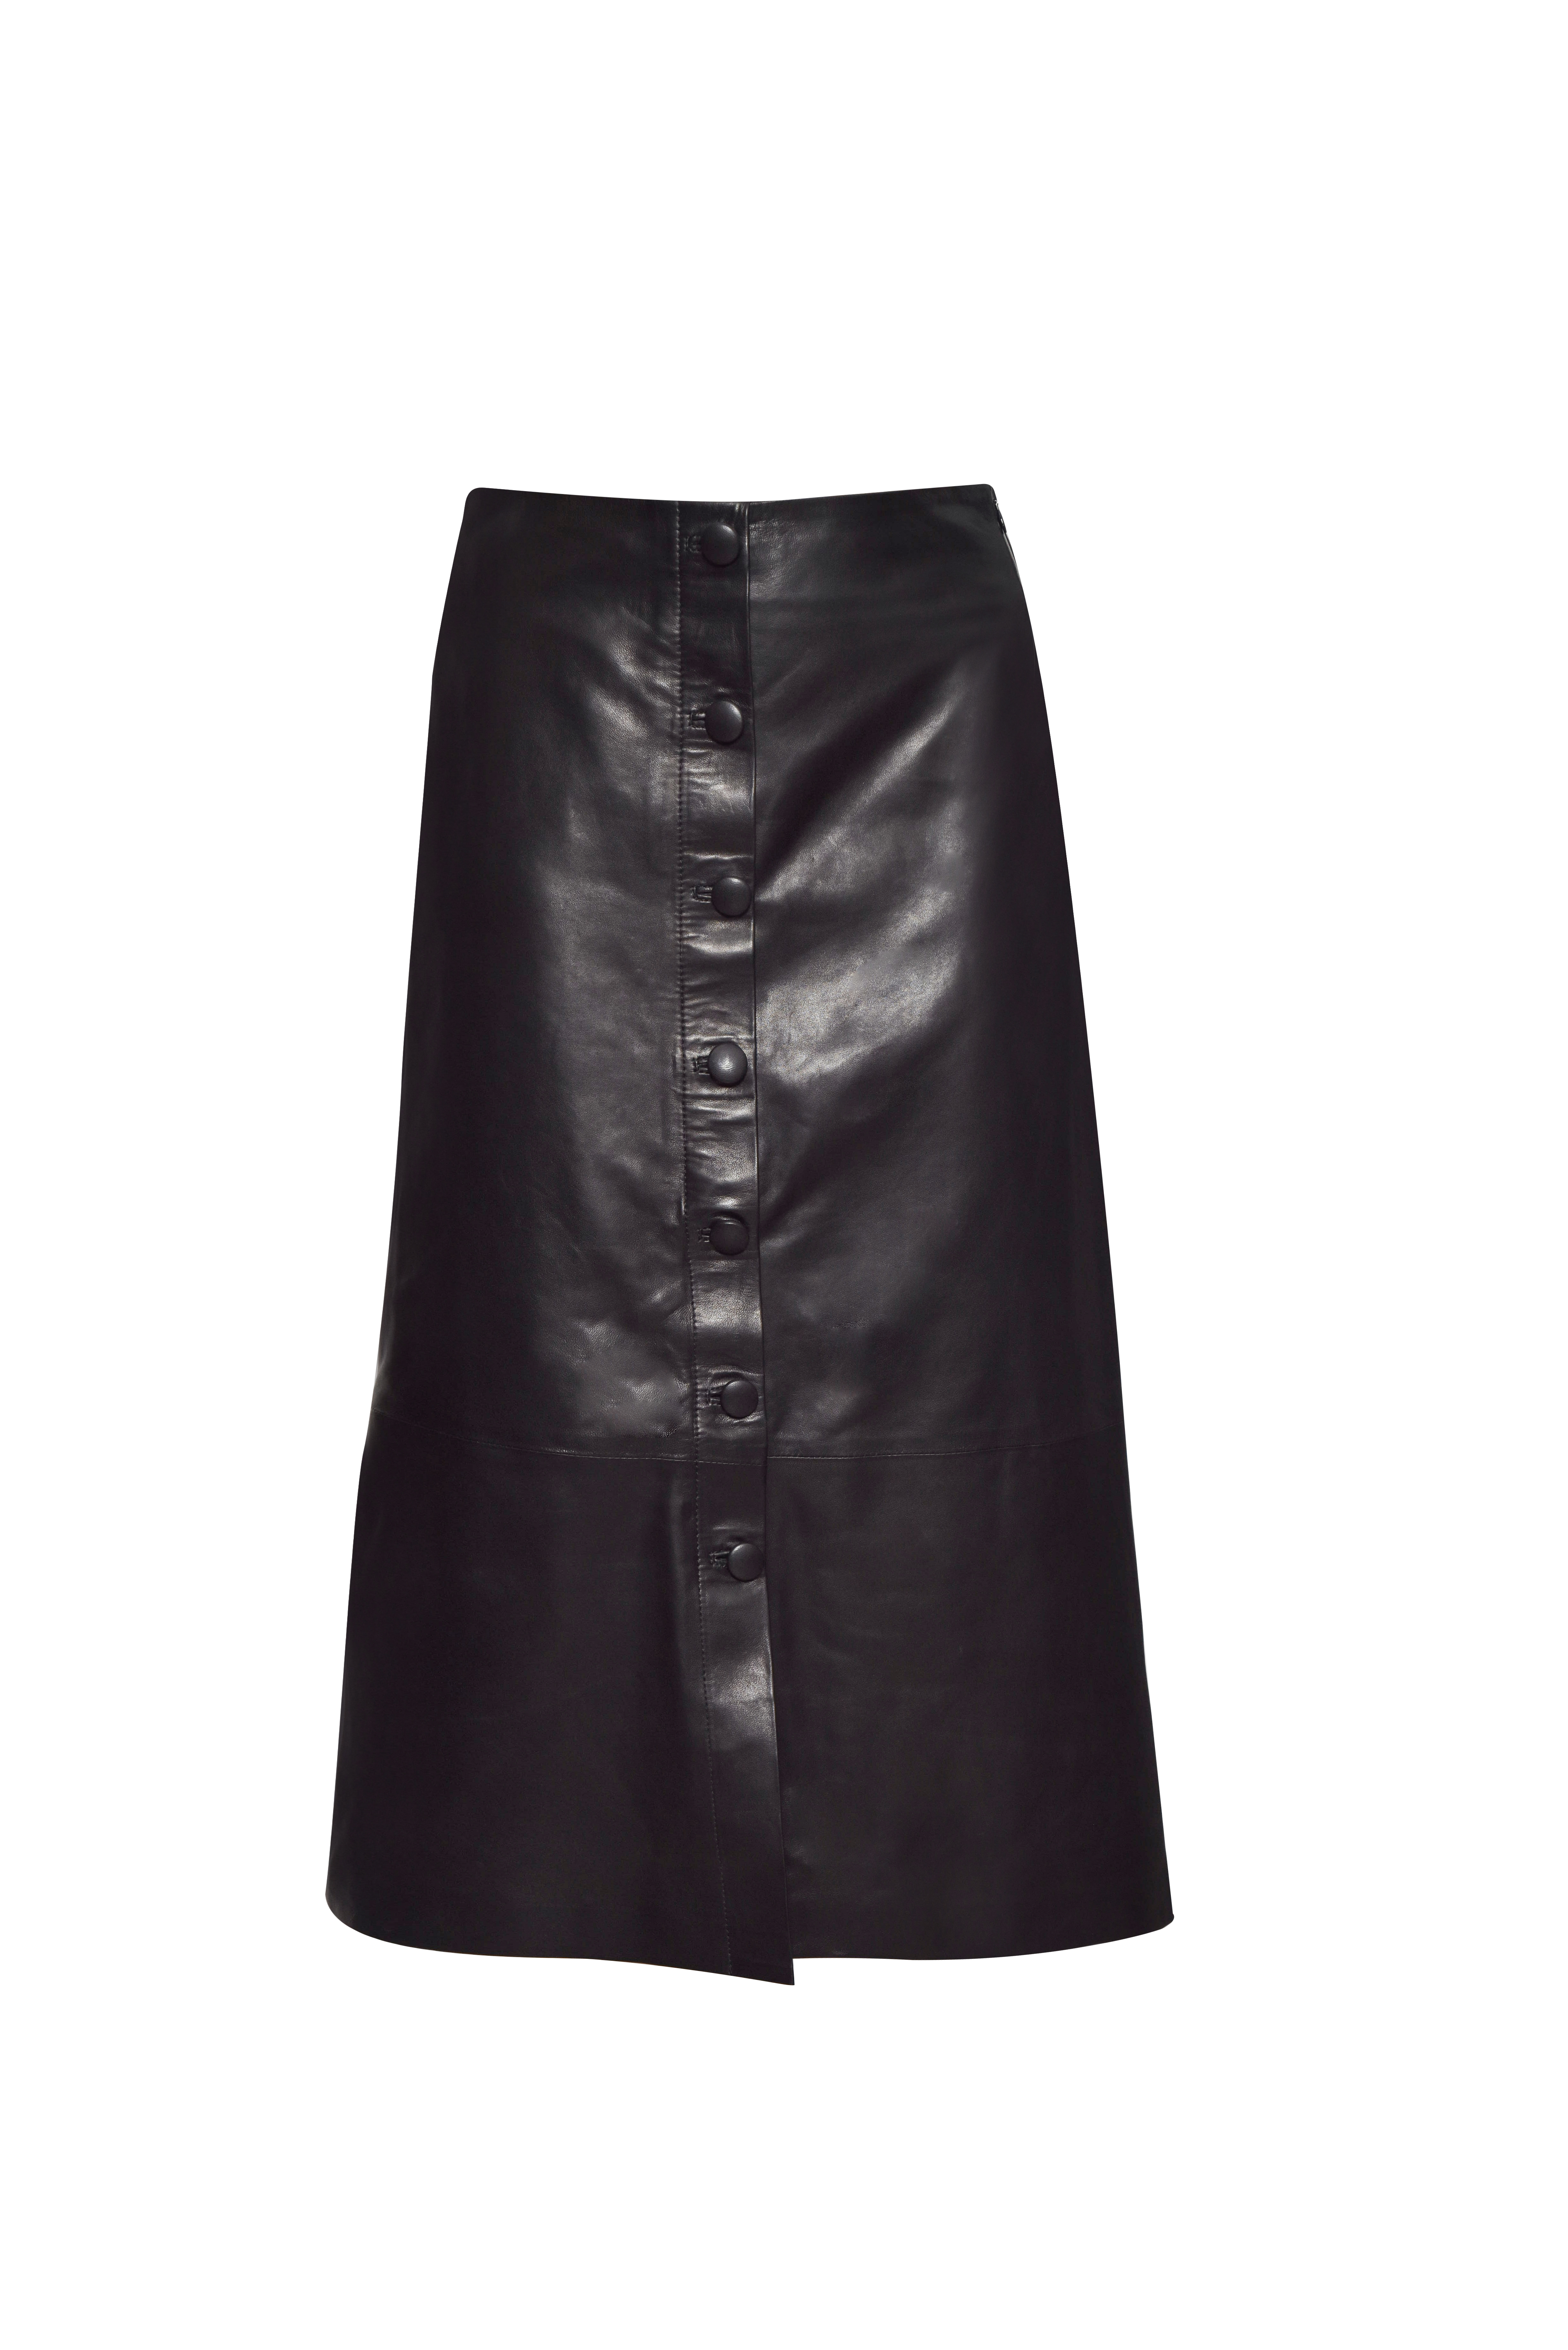 Button Front Midi Leather Skirt - Black by The Ruf on curated-crowd.com